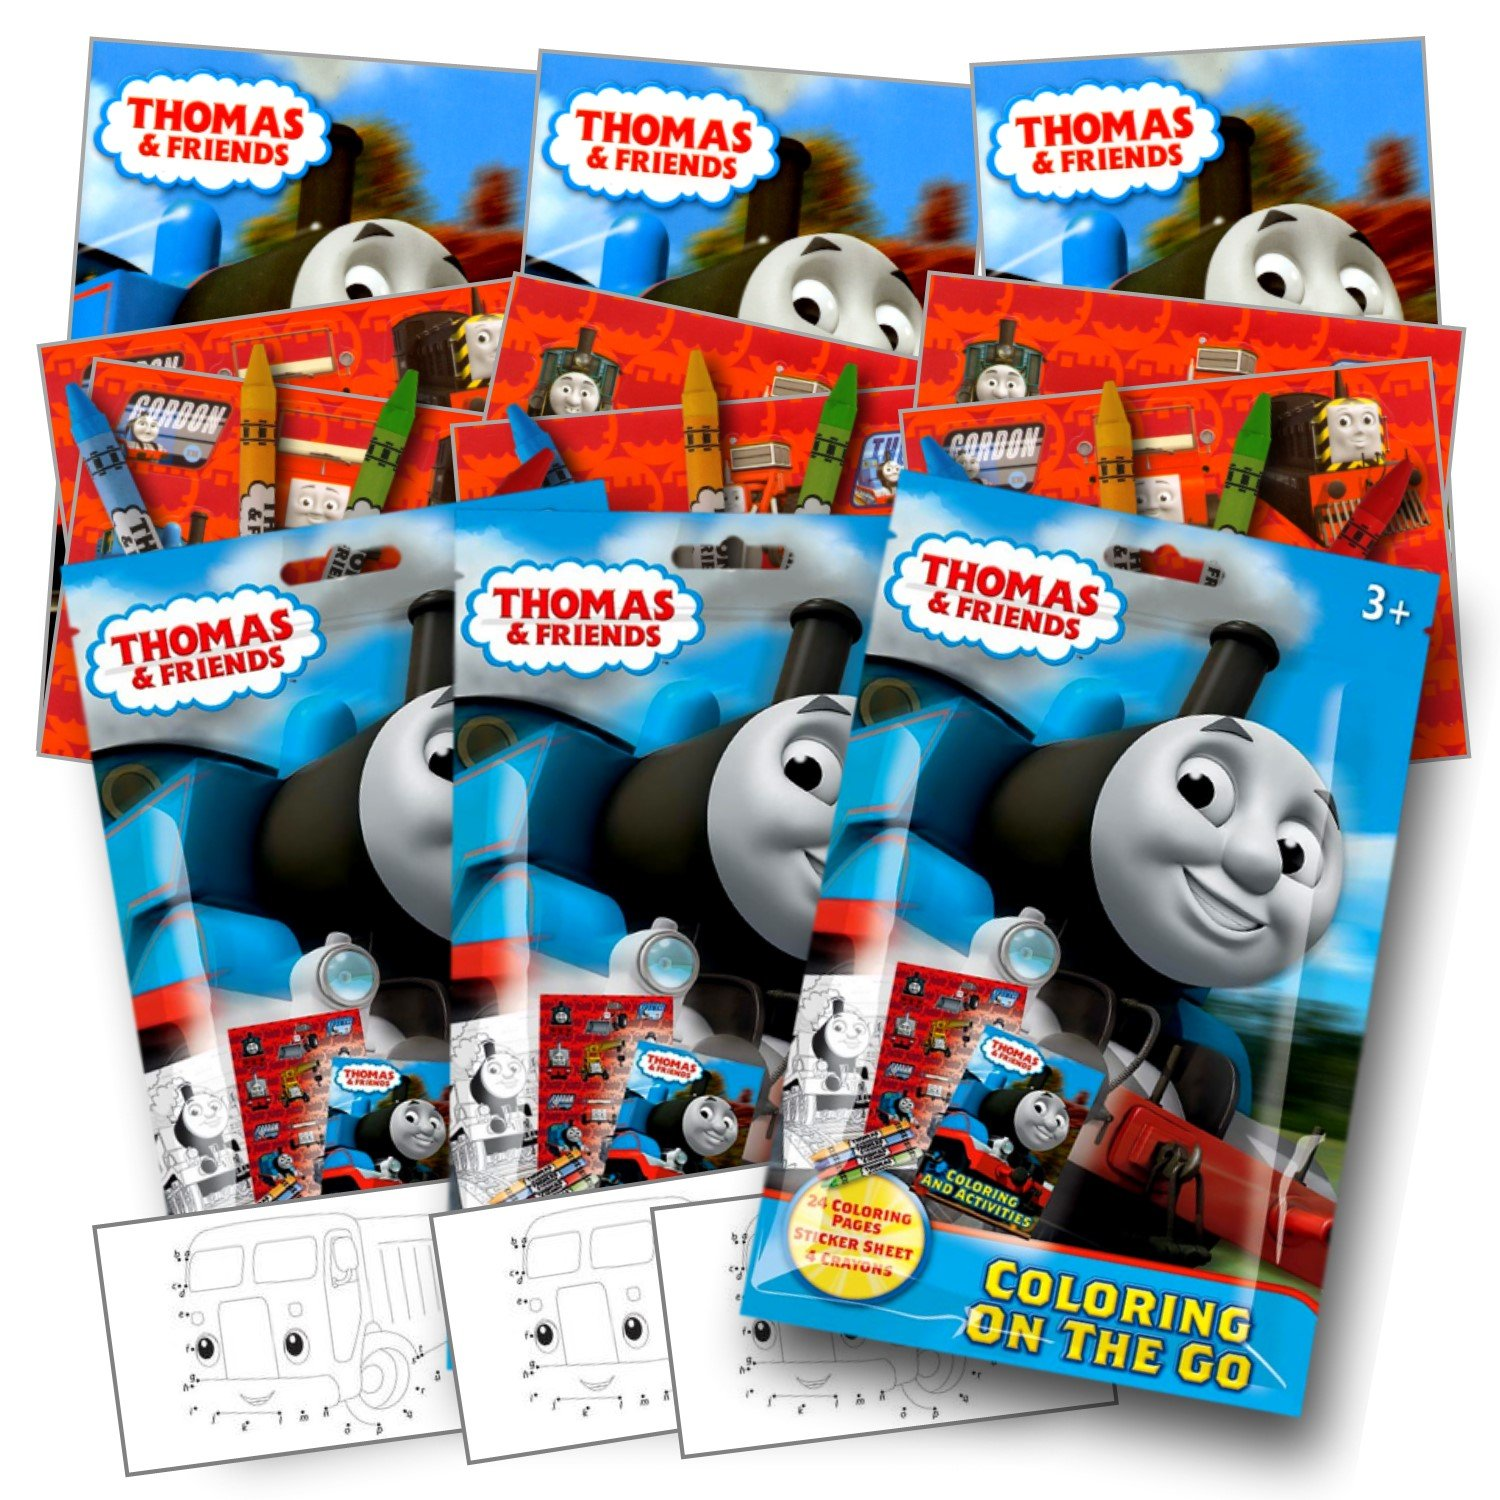 Amazon.com: Thomas The Train Coloring Pack Party Favors with ...